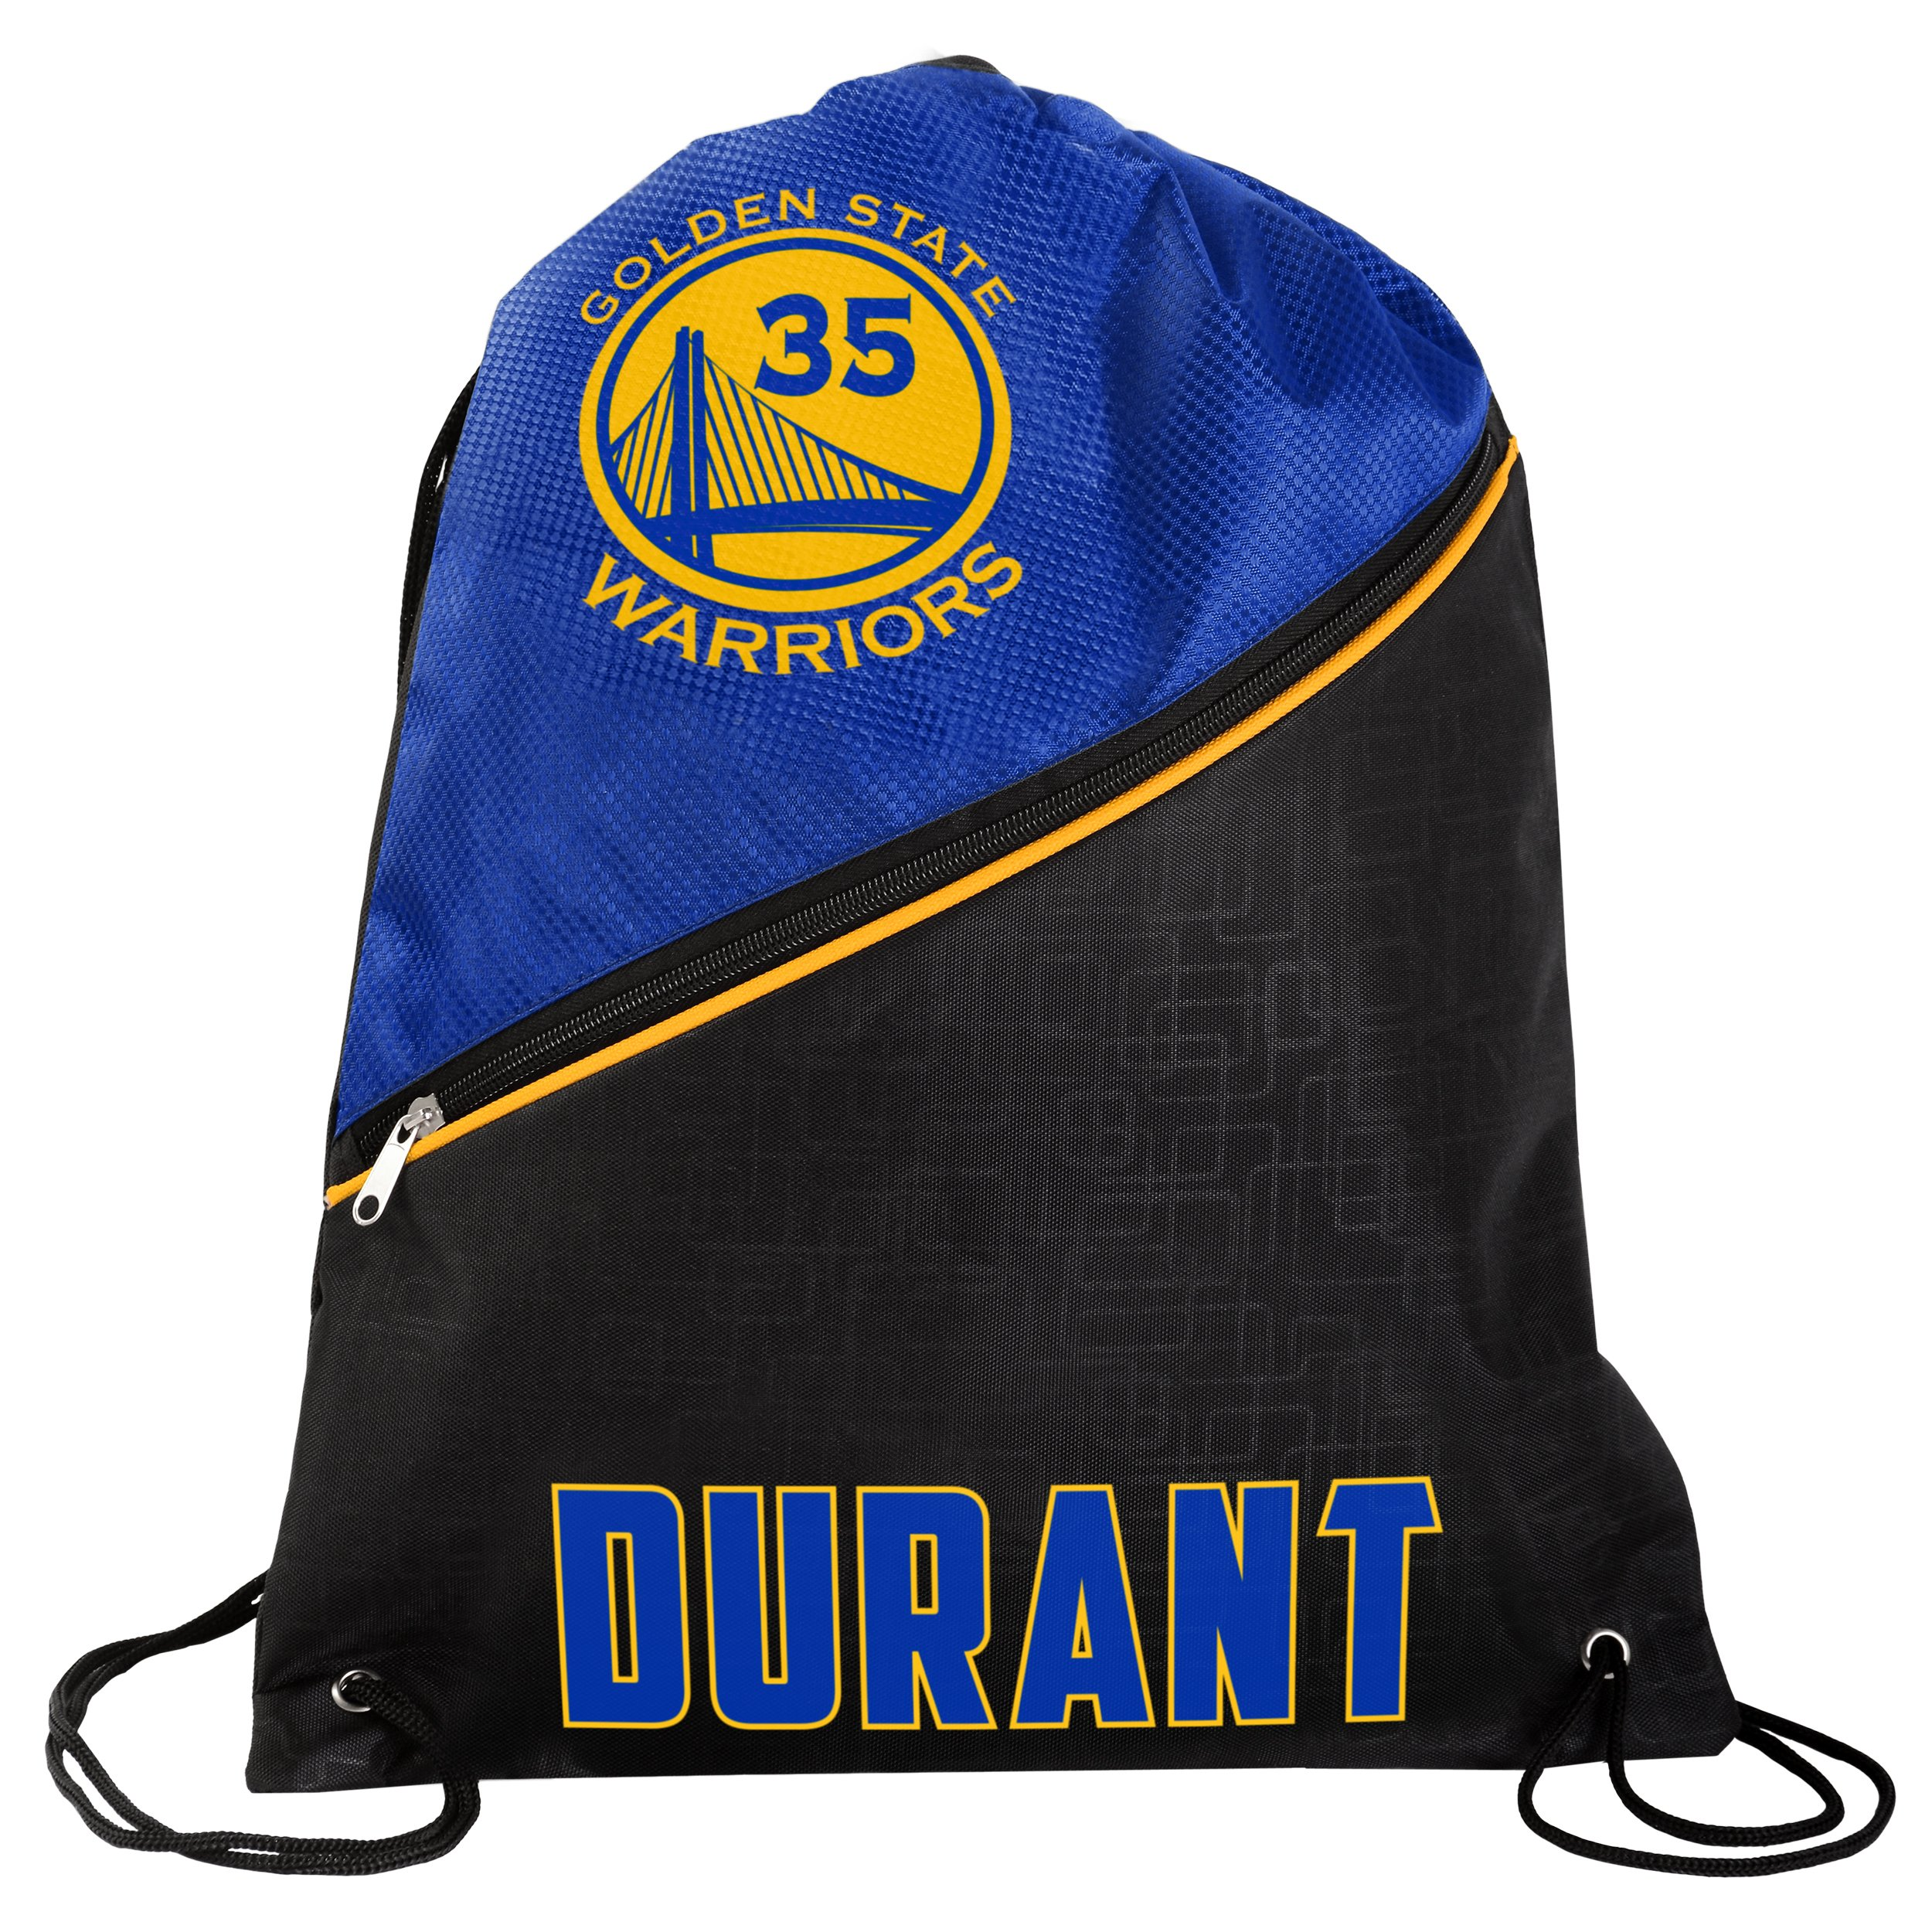 FOCO Golden State Warriors High End Diagonal Zipper Drawstring Backpack Gym Bag - Kevin Durant #35 by FOCO